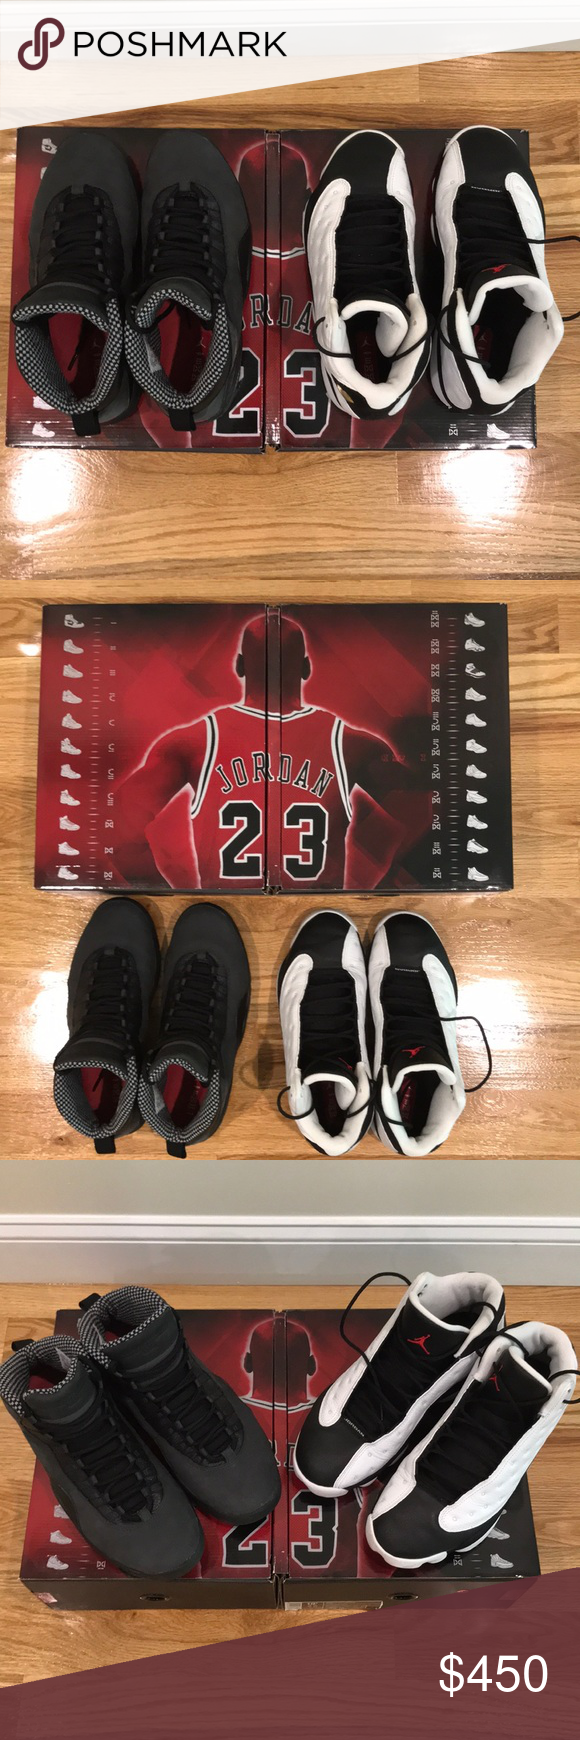 best service ece10 e4ba3 Air Jordan 10 13 Countdown Package Size 10.5. Air Jordan 10 13 Countdown  Package. Both pairs are in excellent condition. Each pair only worn twice.